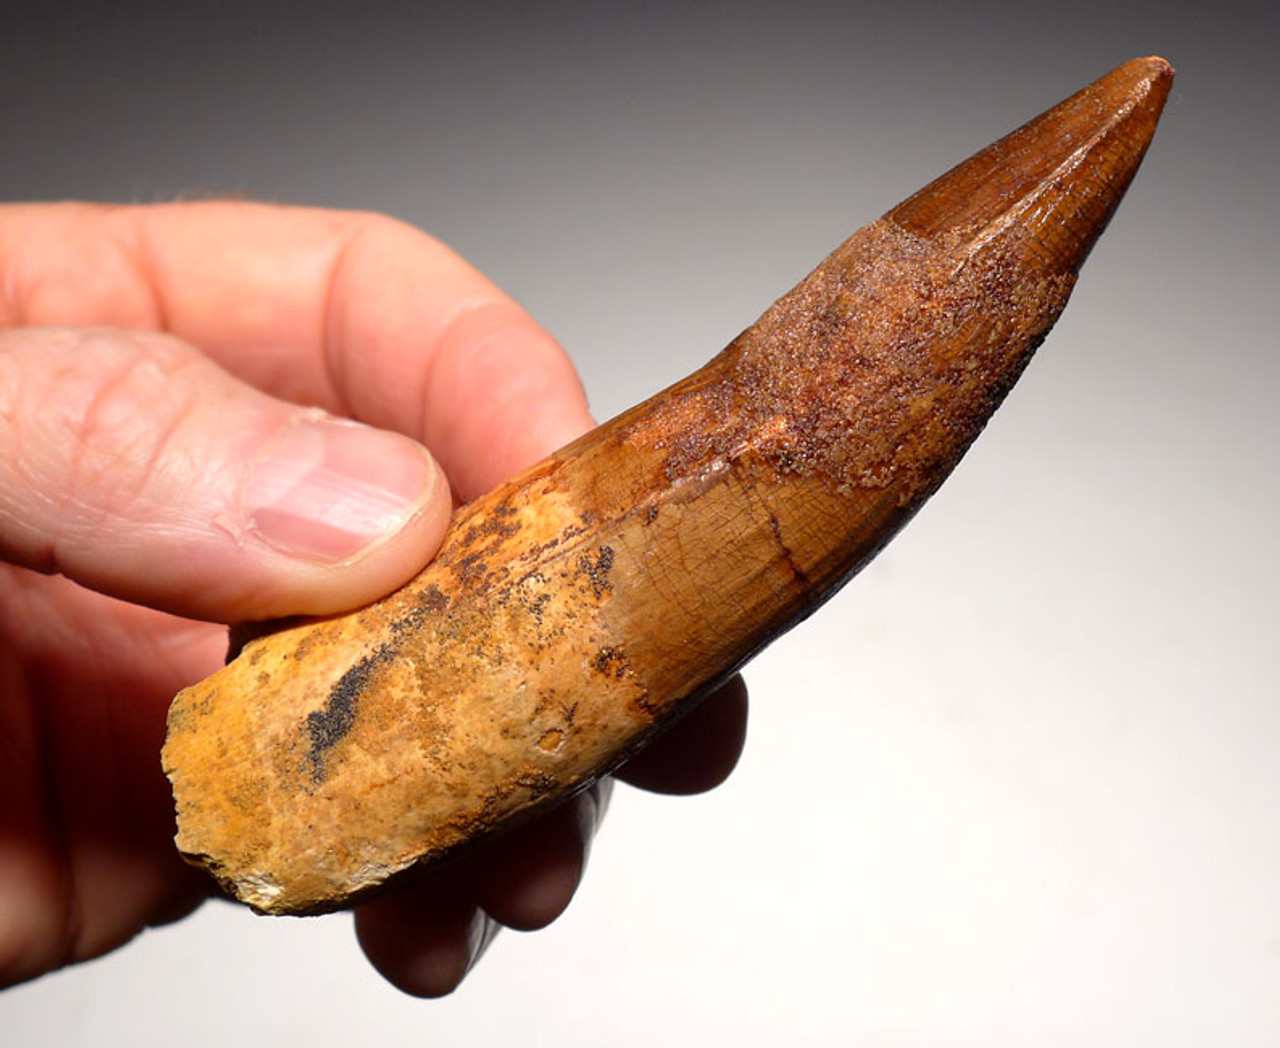 DT5-261 - IMPRESSIVE 4.25 INCH SPINOSAURUS FOSSIL TOOTH FROM A HUGE DINOSAUR